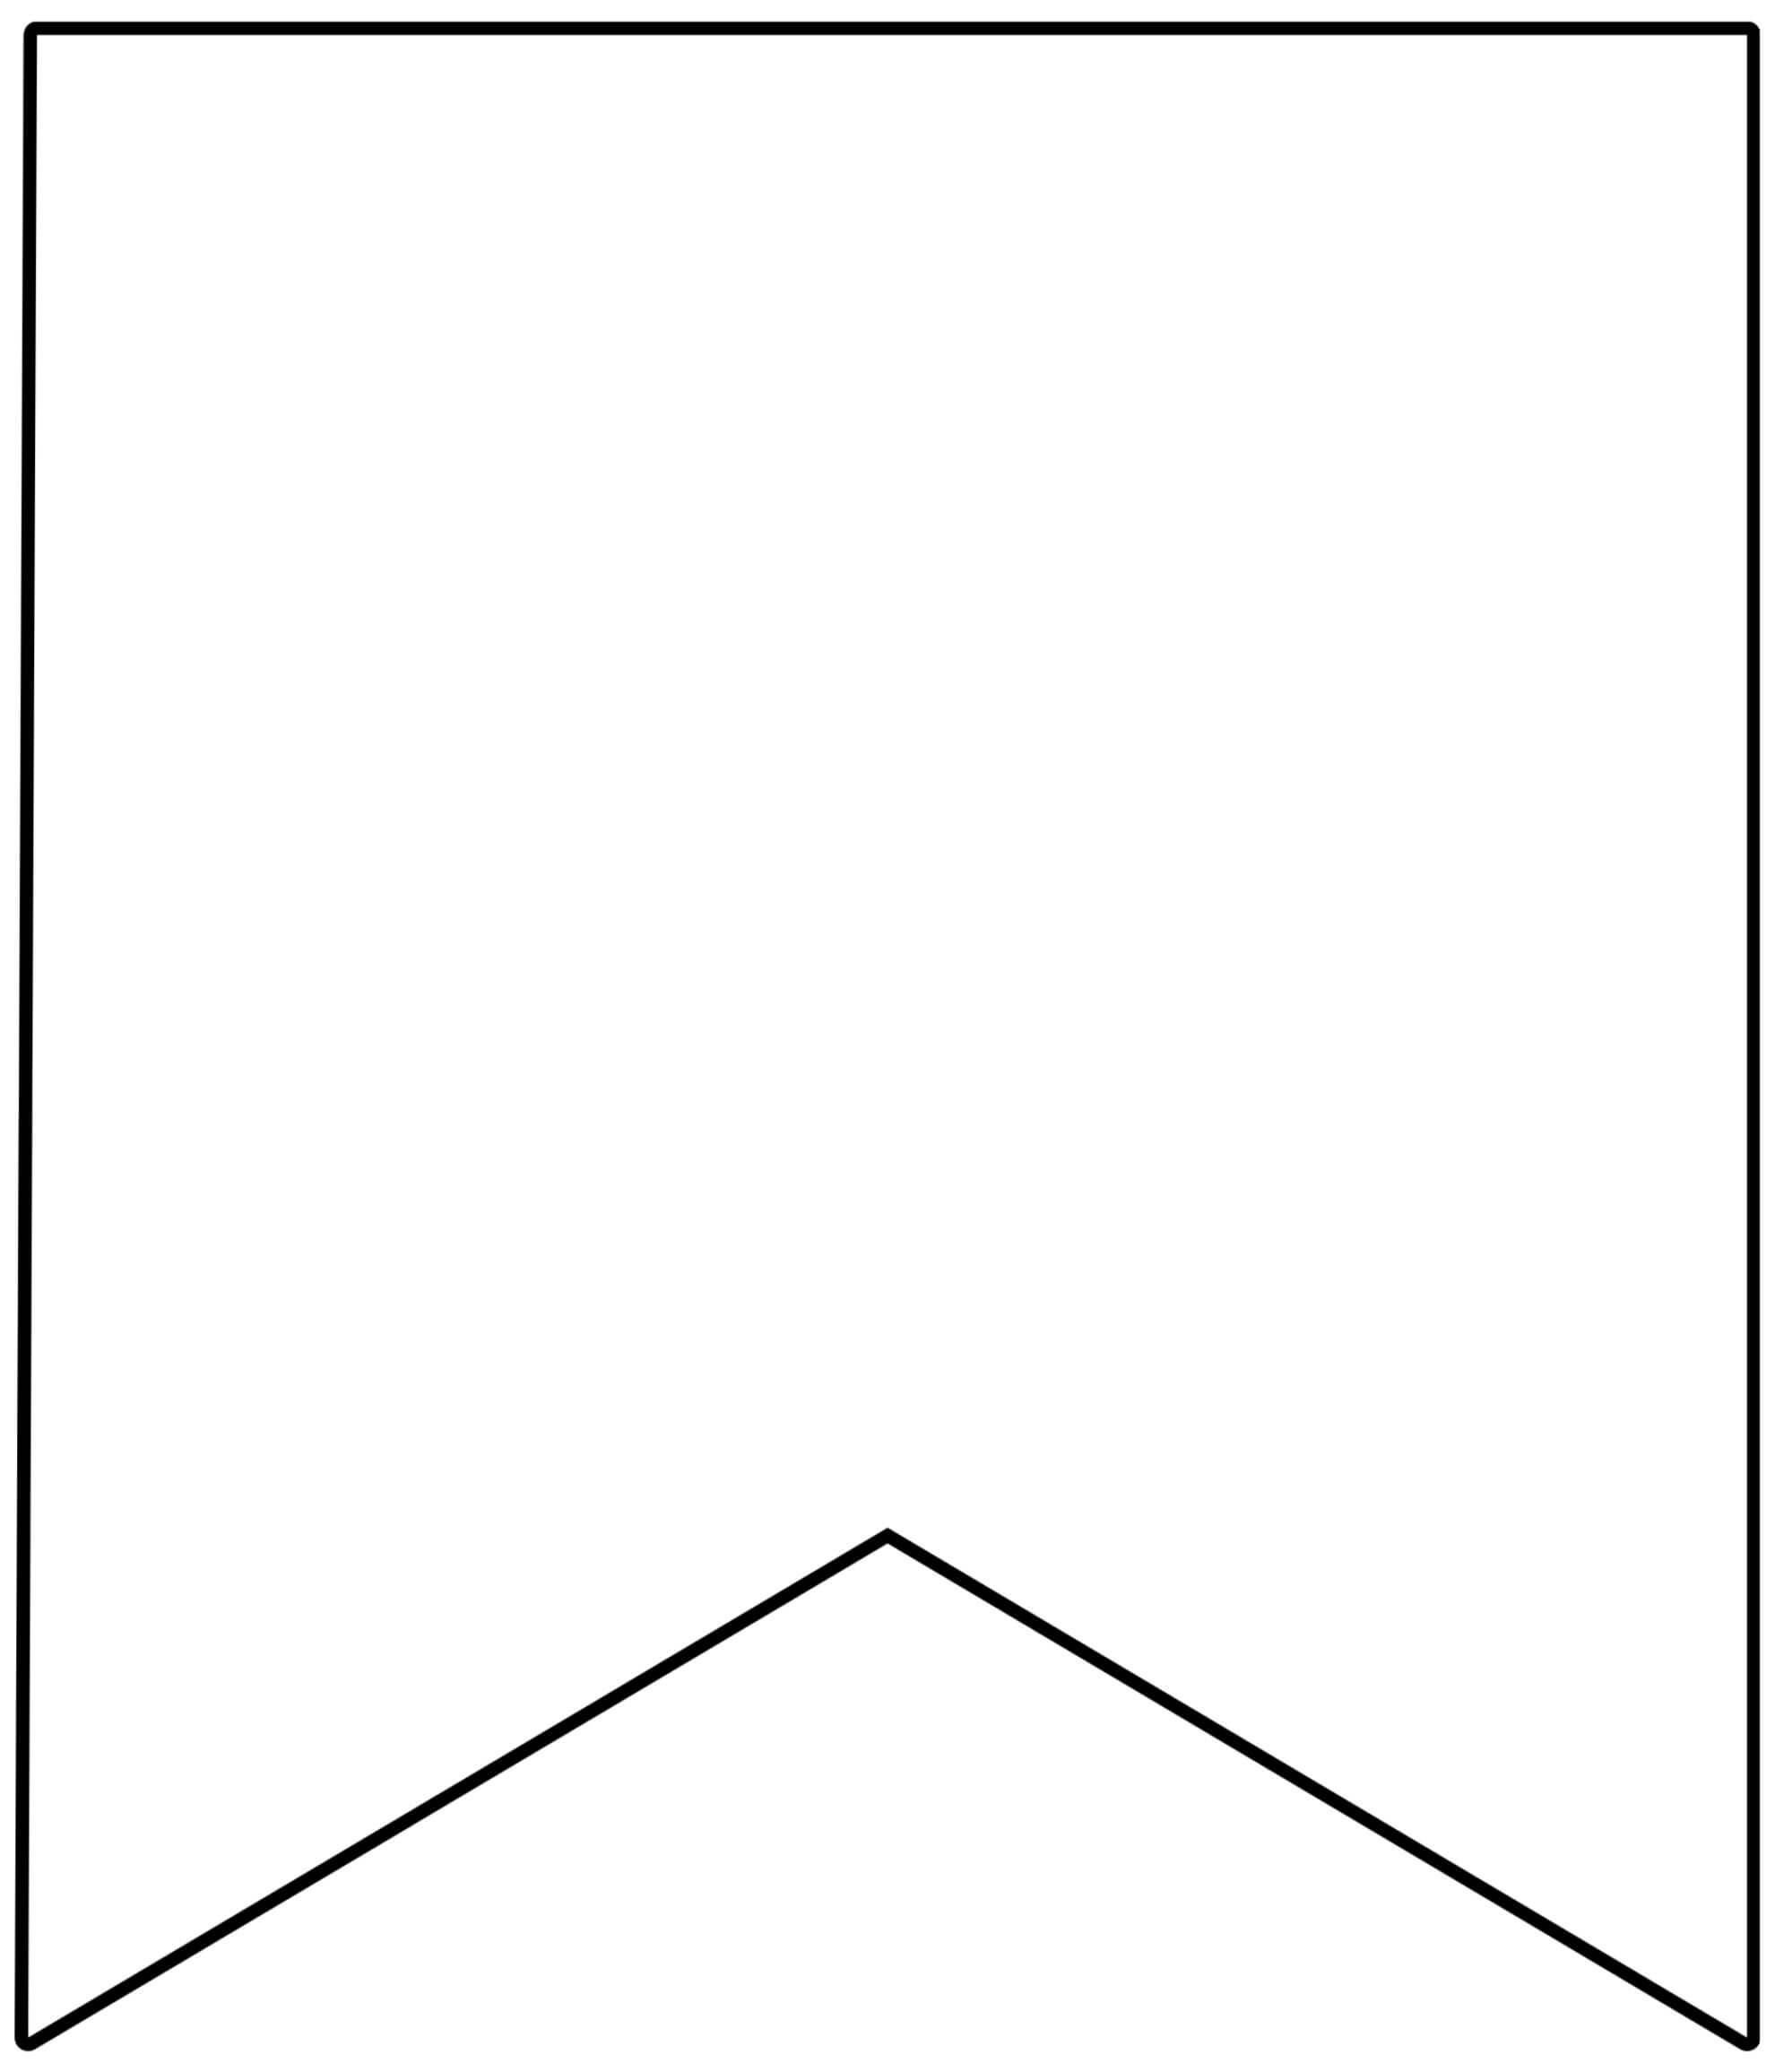 Free Printable Banner Templates {Blank Banners} - Paper In Printable Pennant Banner Template Free